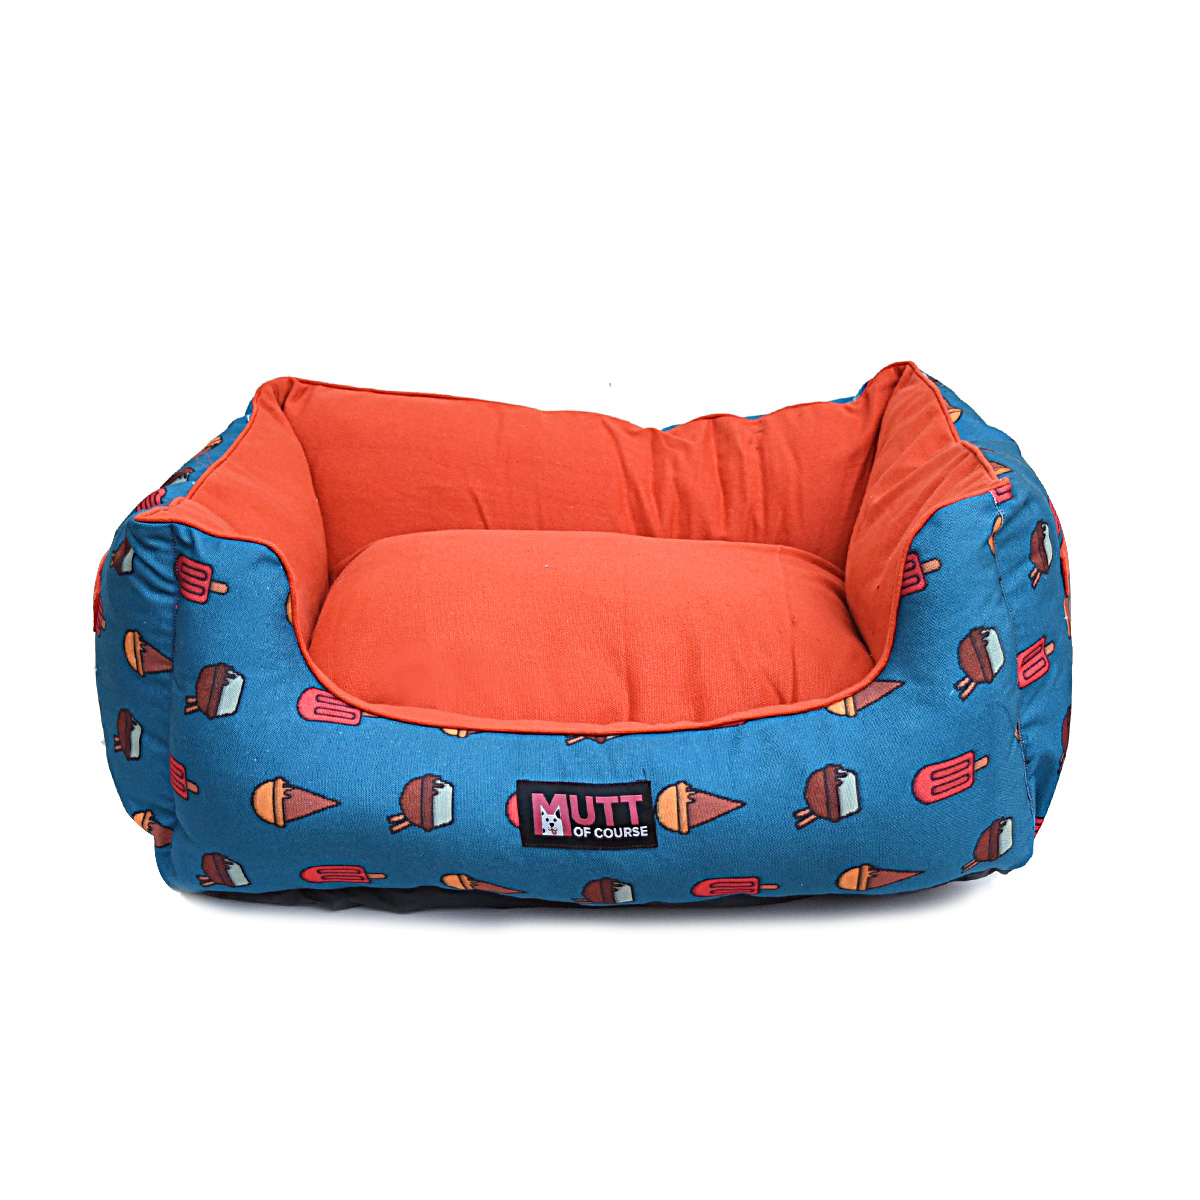 Mutt Of Course Lounger Bed For Dogs - Pupscicles - Large